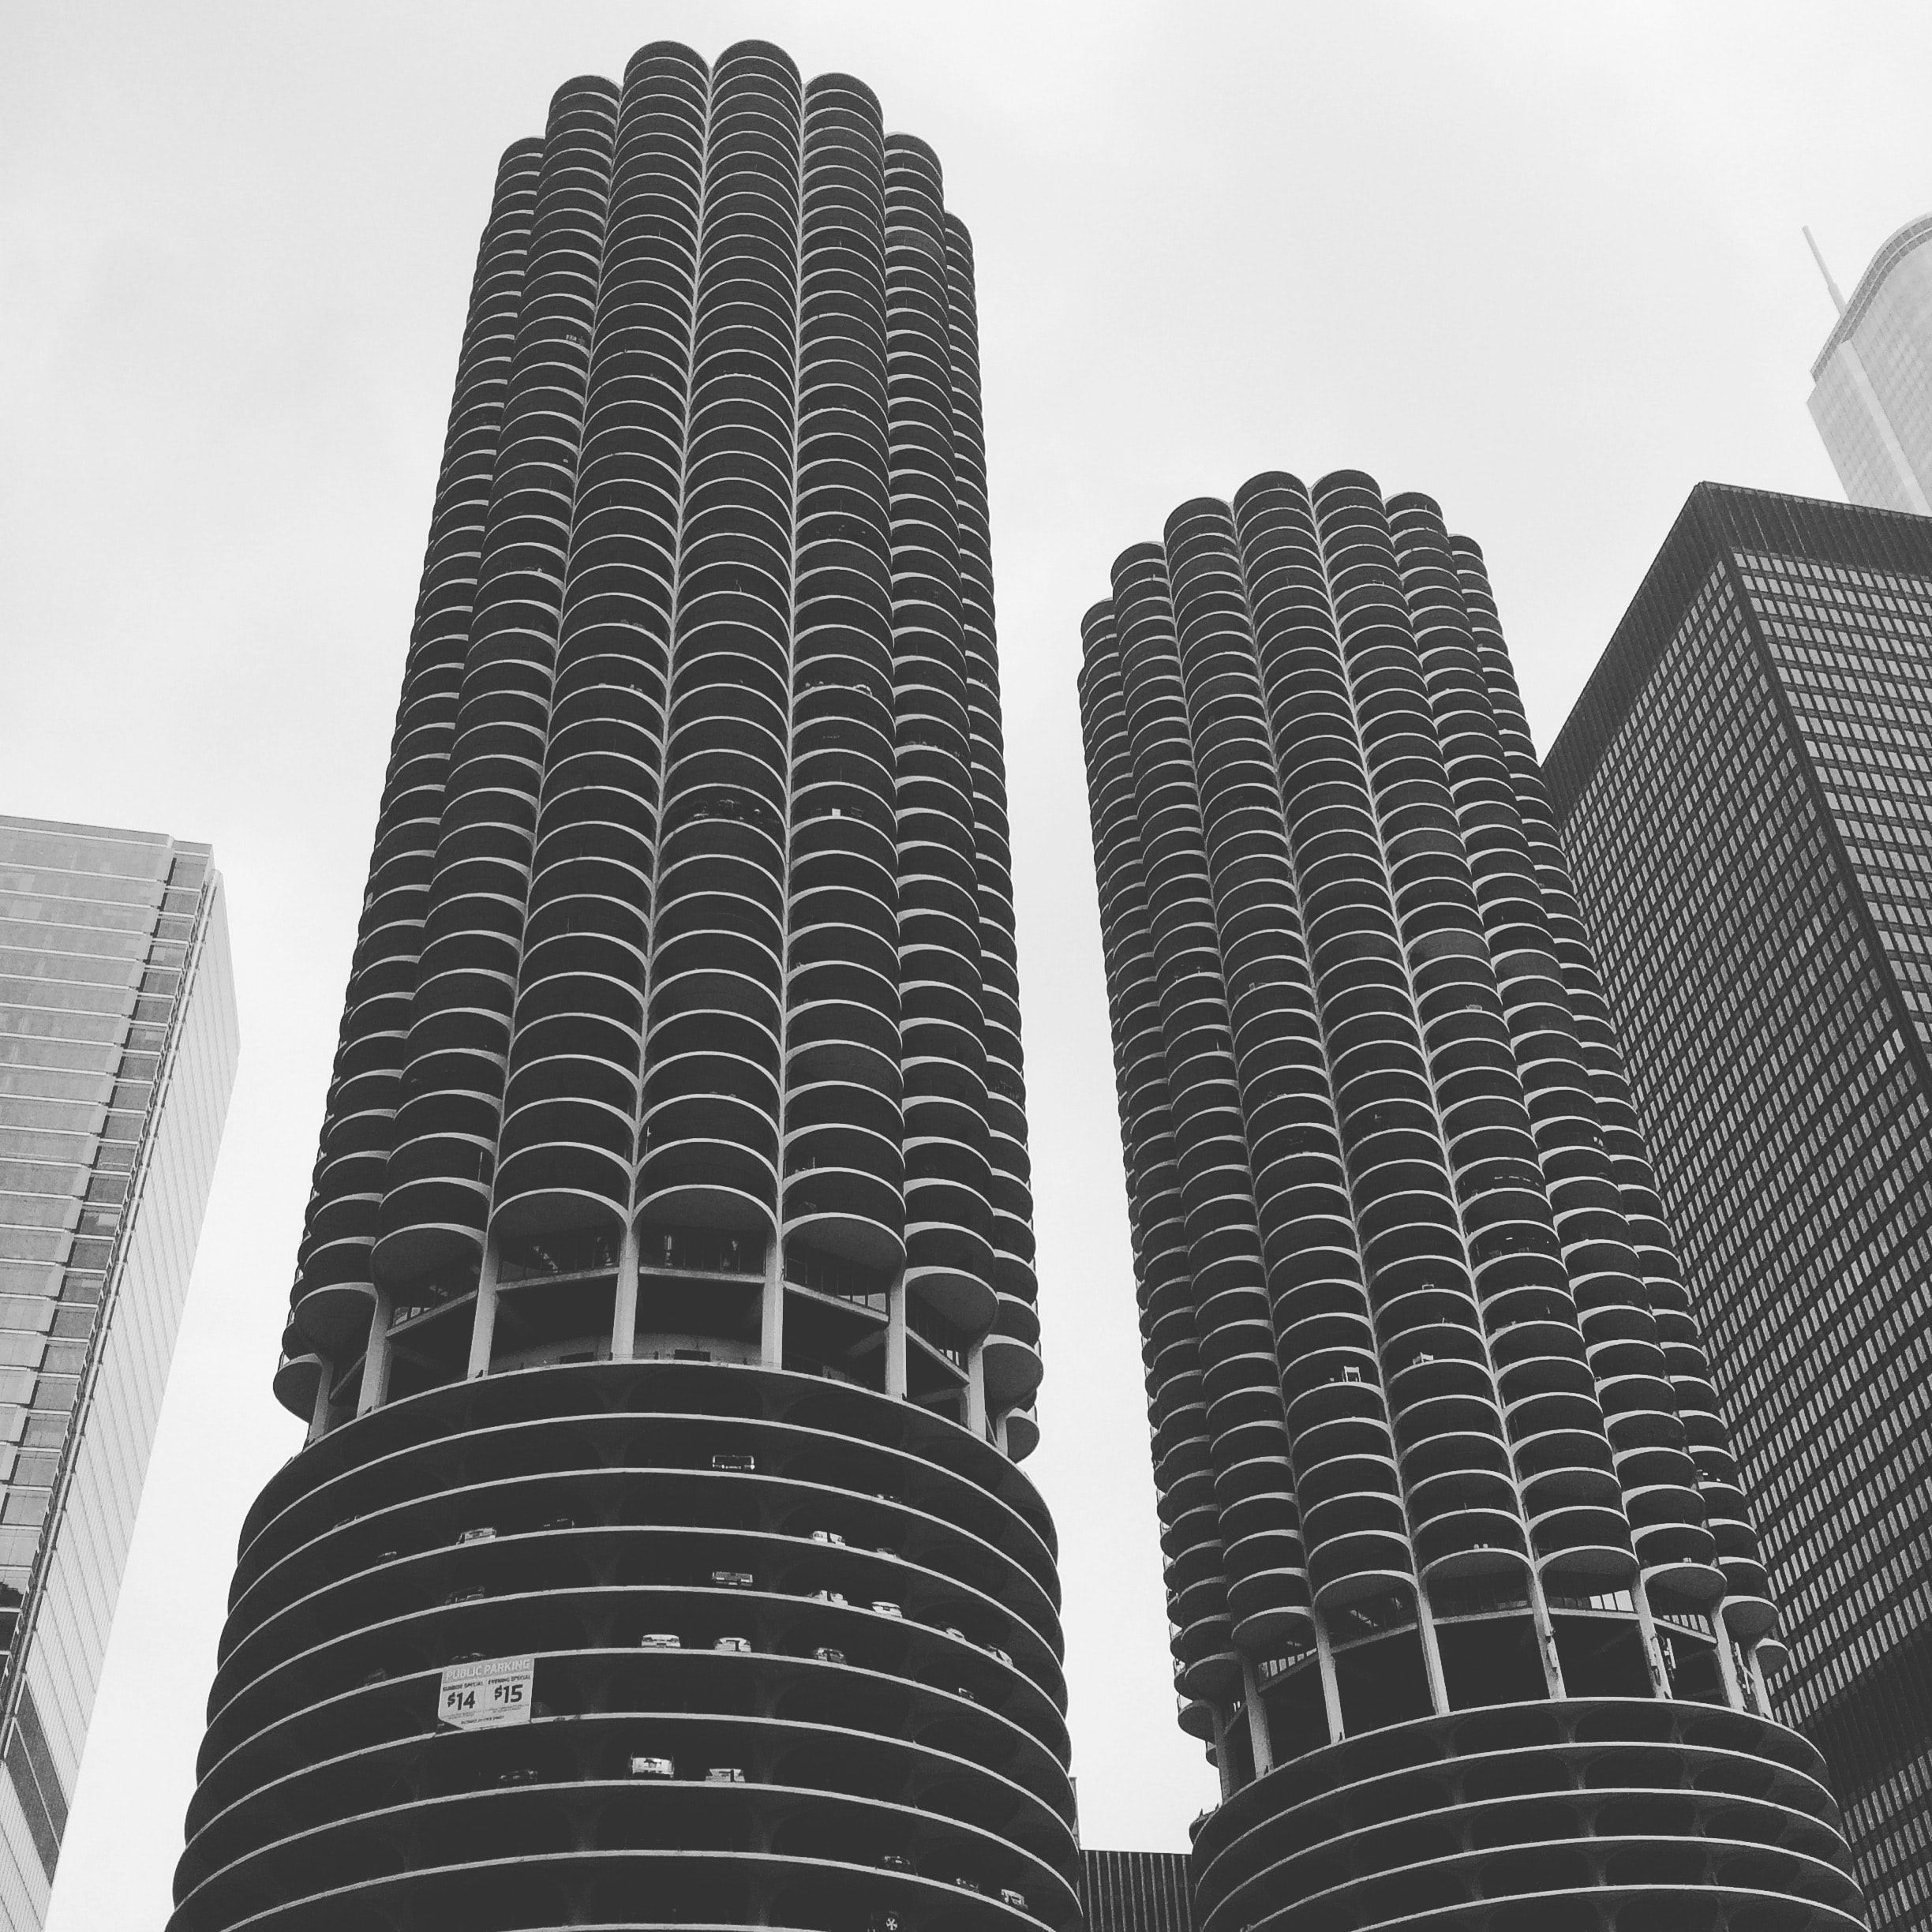 Black and white photo of famous round buildings in Chicago